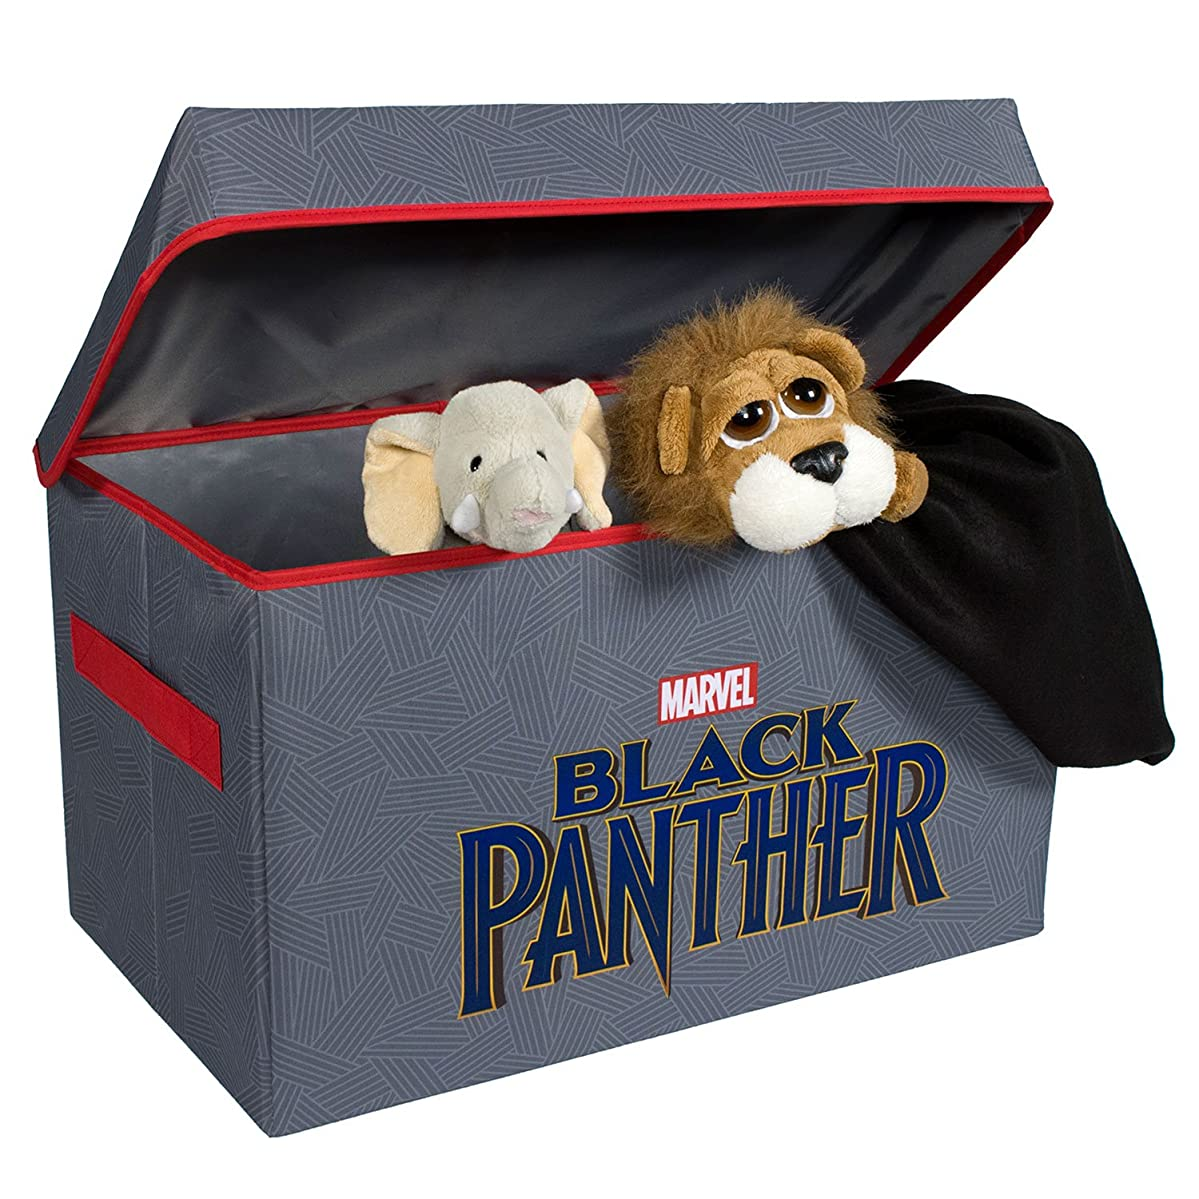 Black Panther Collapsible Kids?Toy Storage Chest by?Marvel - Flip-Top Toy Organizer Bin for Closets, Kids Bedroom, Boys & Girls Toys - Foldable Toy Basket Organizer with Strong Handles & Design